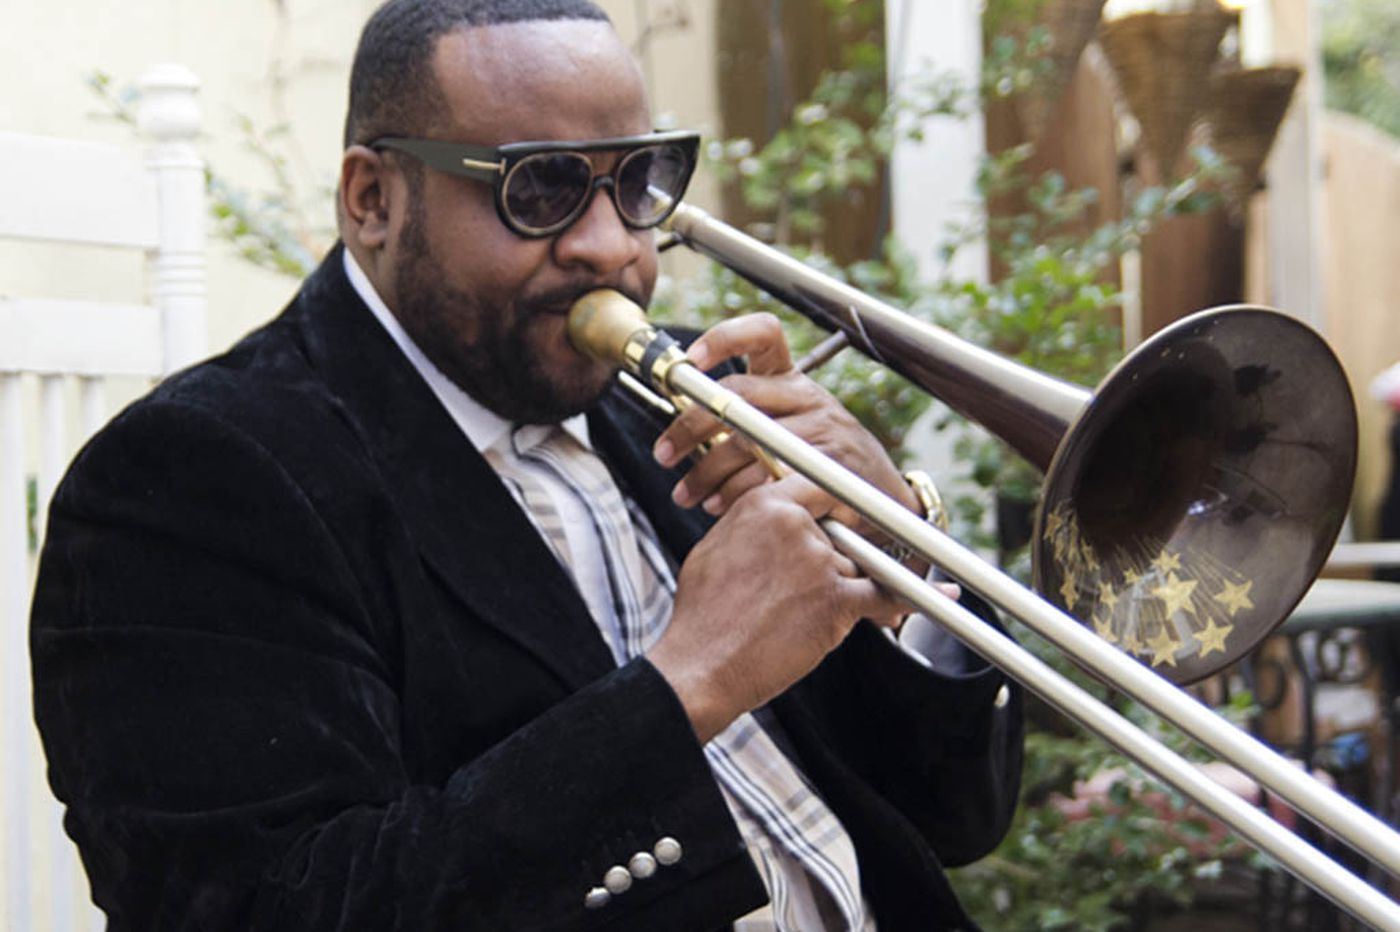 Listen to the sound of trombonist Jeff Bradshaw's Philadelphia - on CD and at the TLA Tuesday